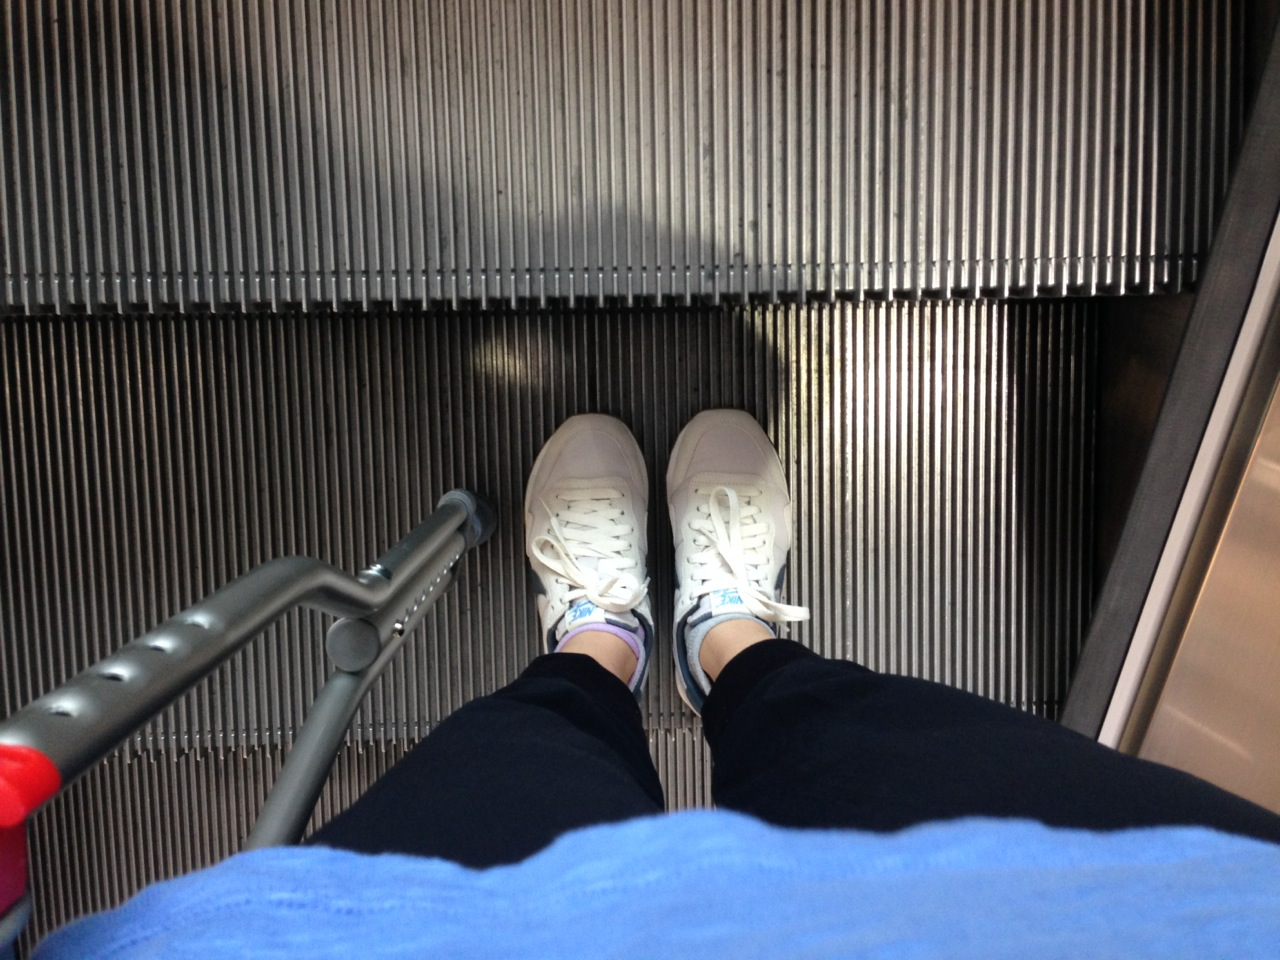 Orthopedic approved shoes, crutch, and escalators just screams summertime in your twenties, no?